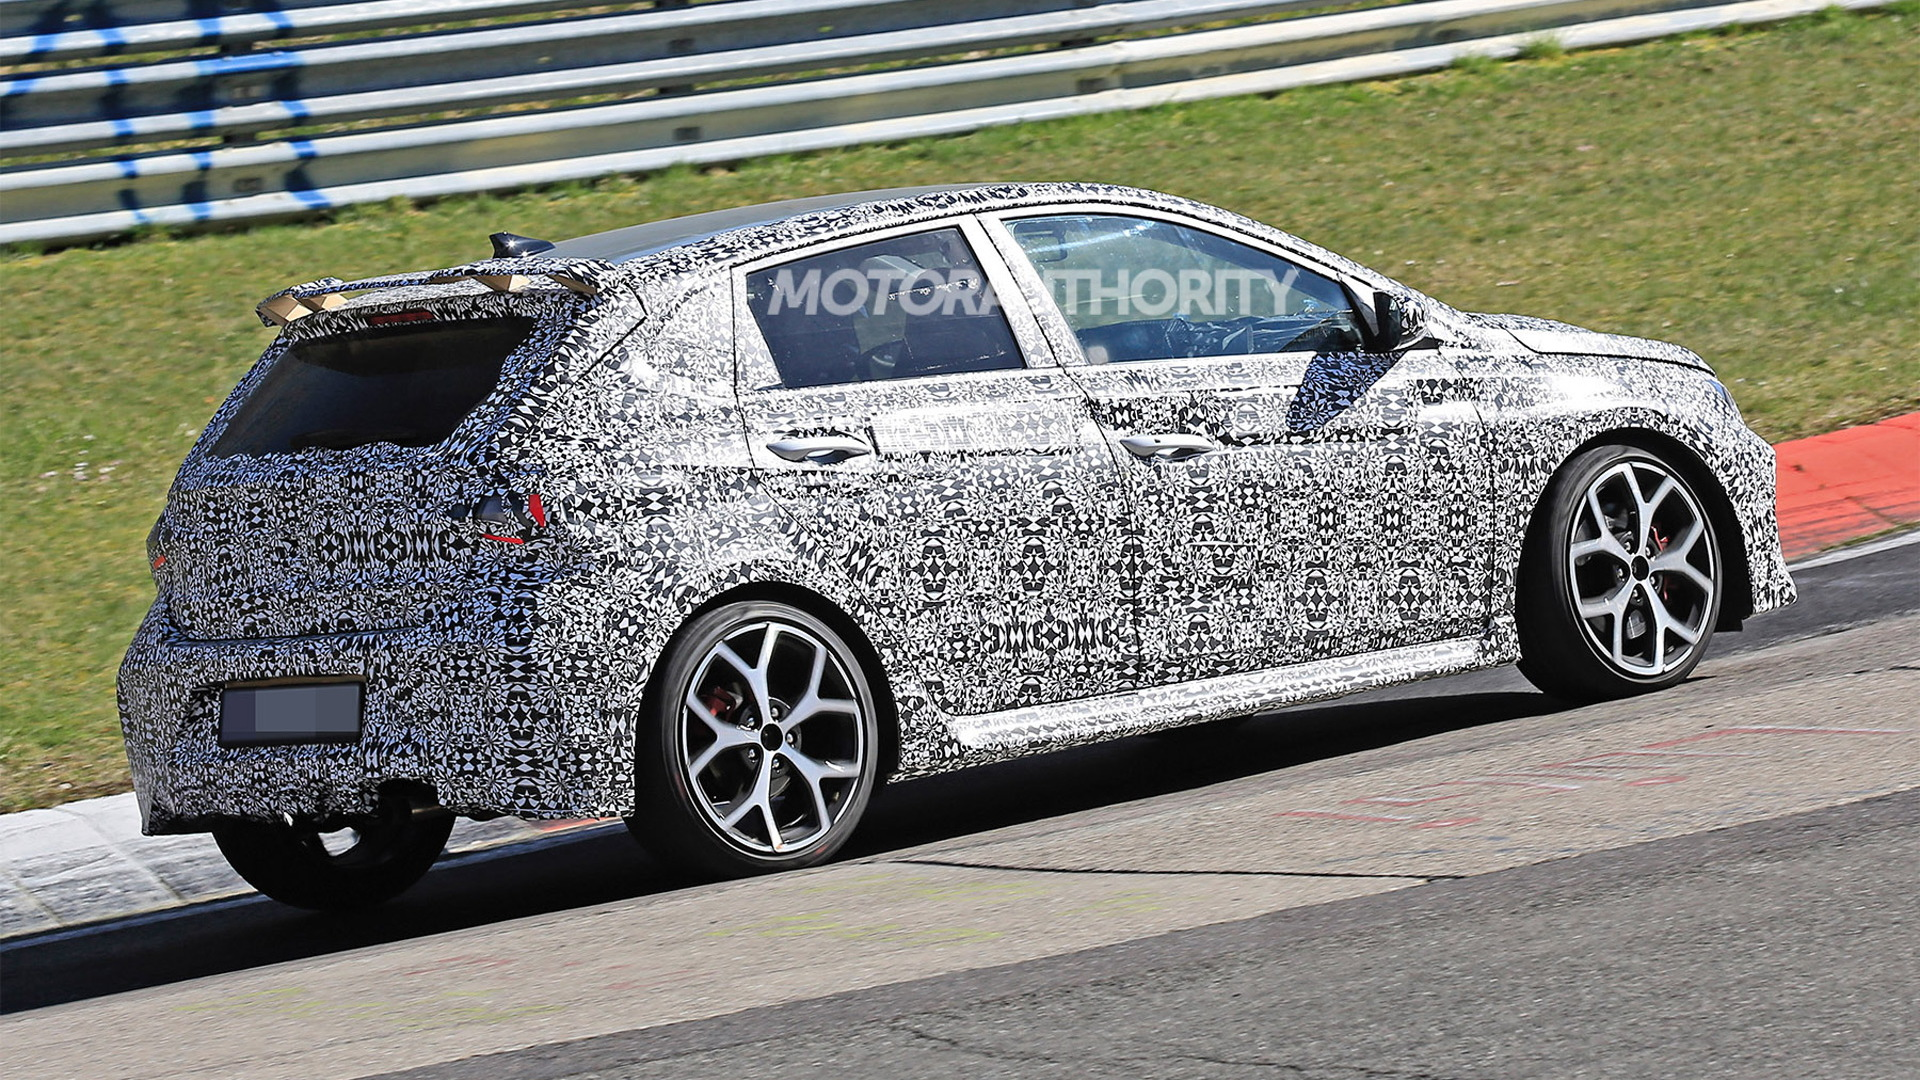 2021 Hyundai i20 N spy shots - Photo credit: S. Baldauf/SB-Medien